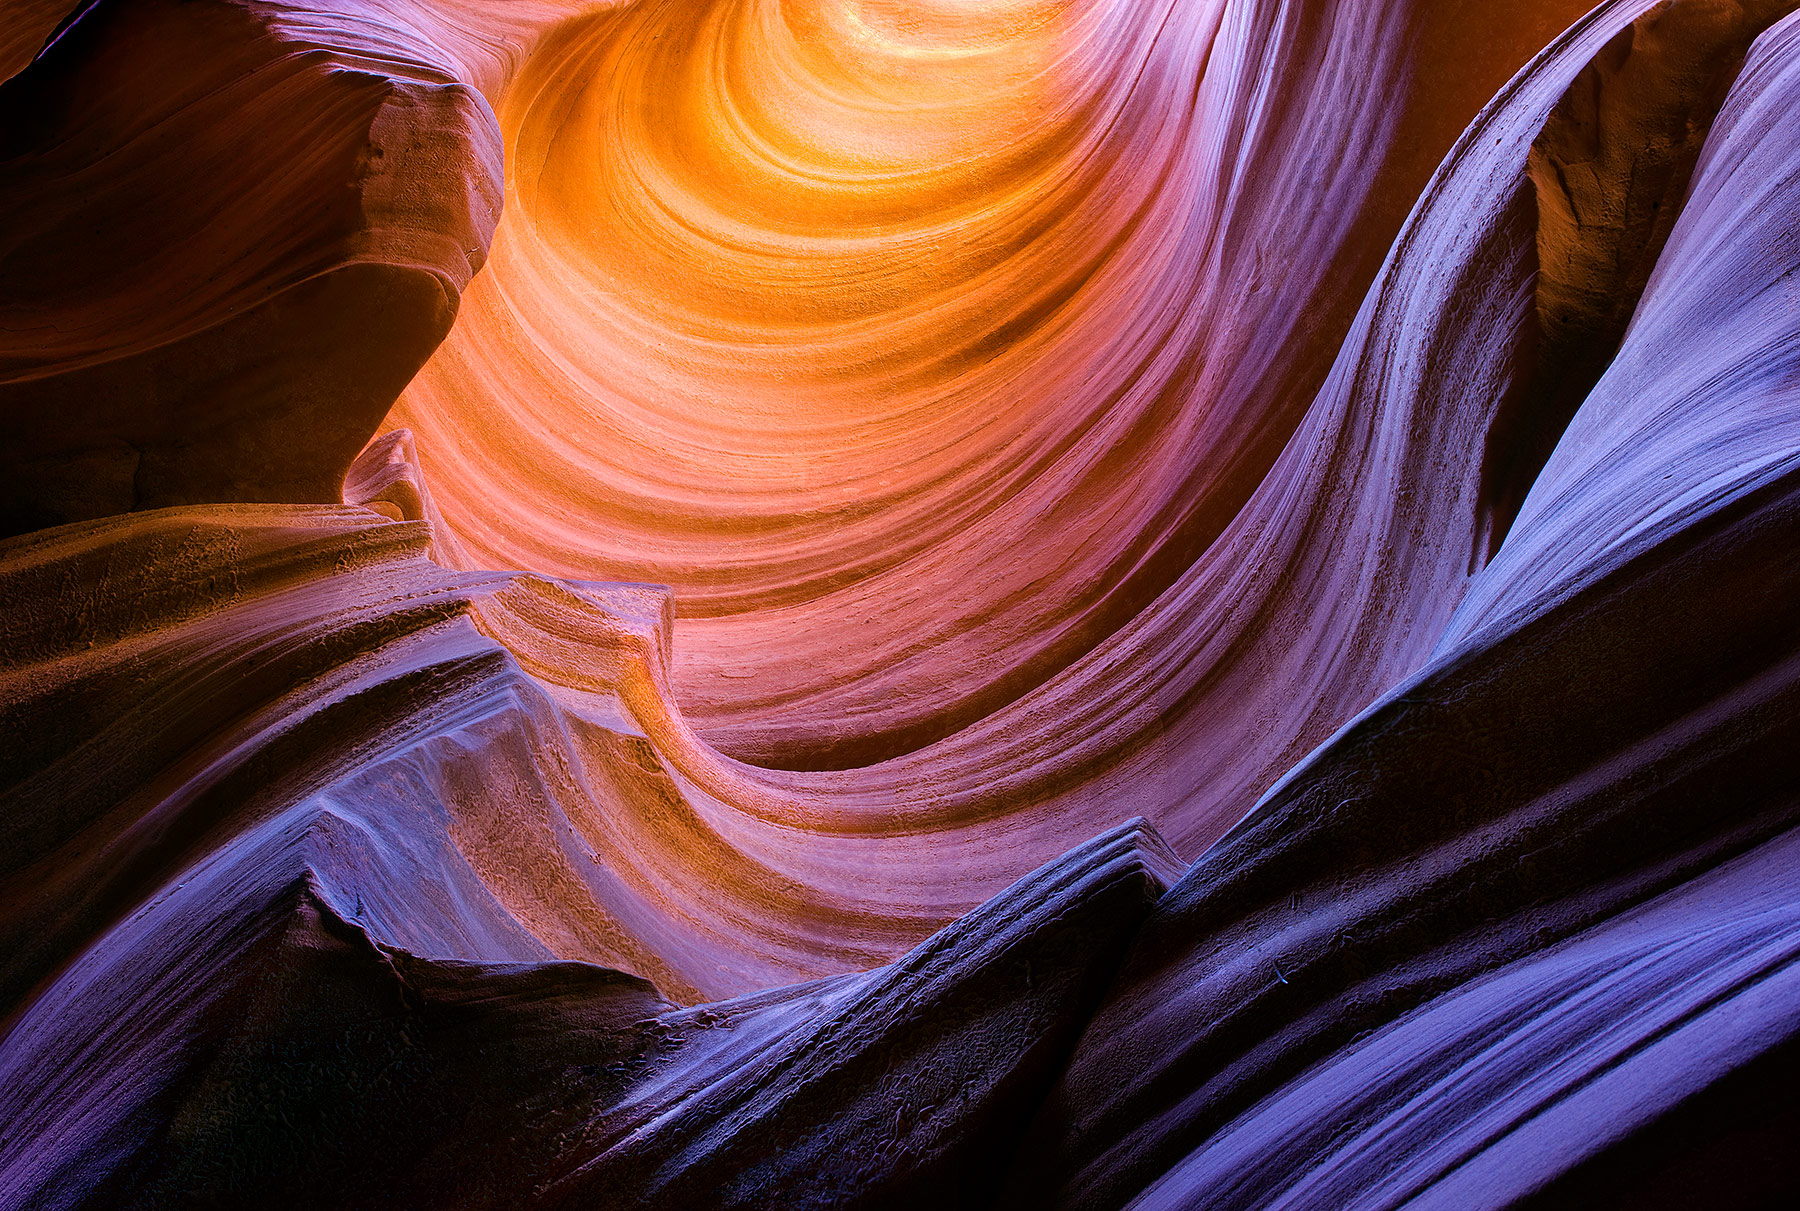 sandstone, remote, deep, canyon, slot canyon, colorful, photo